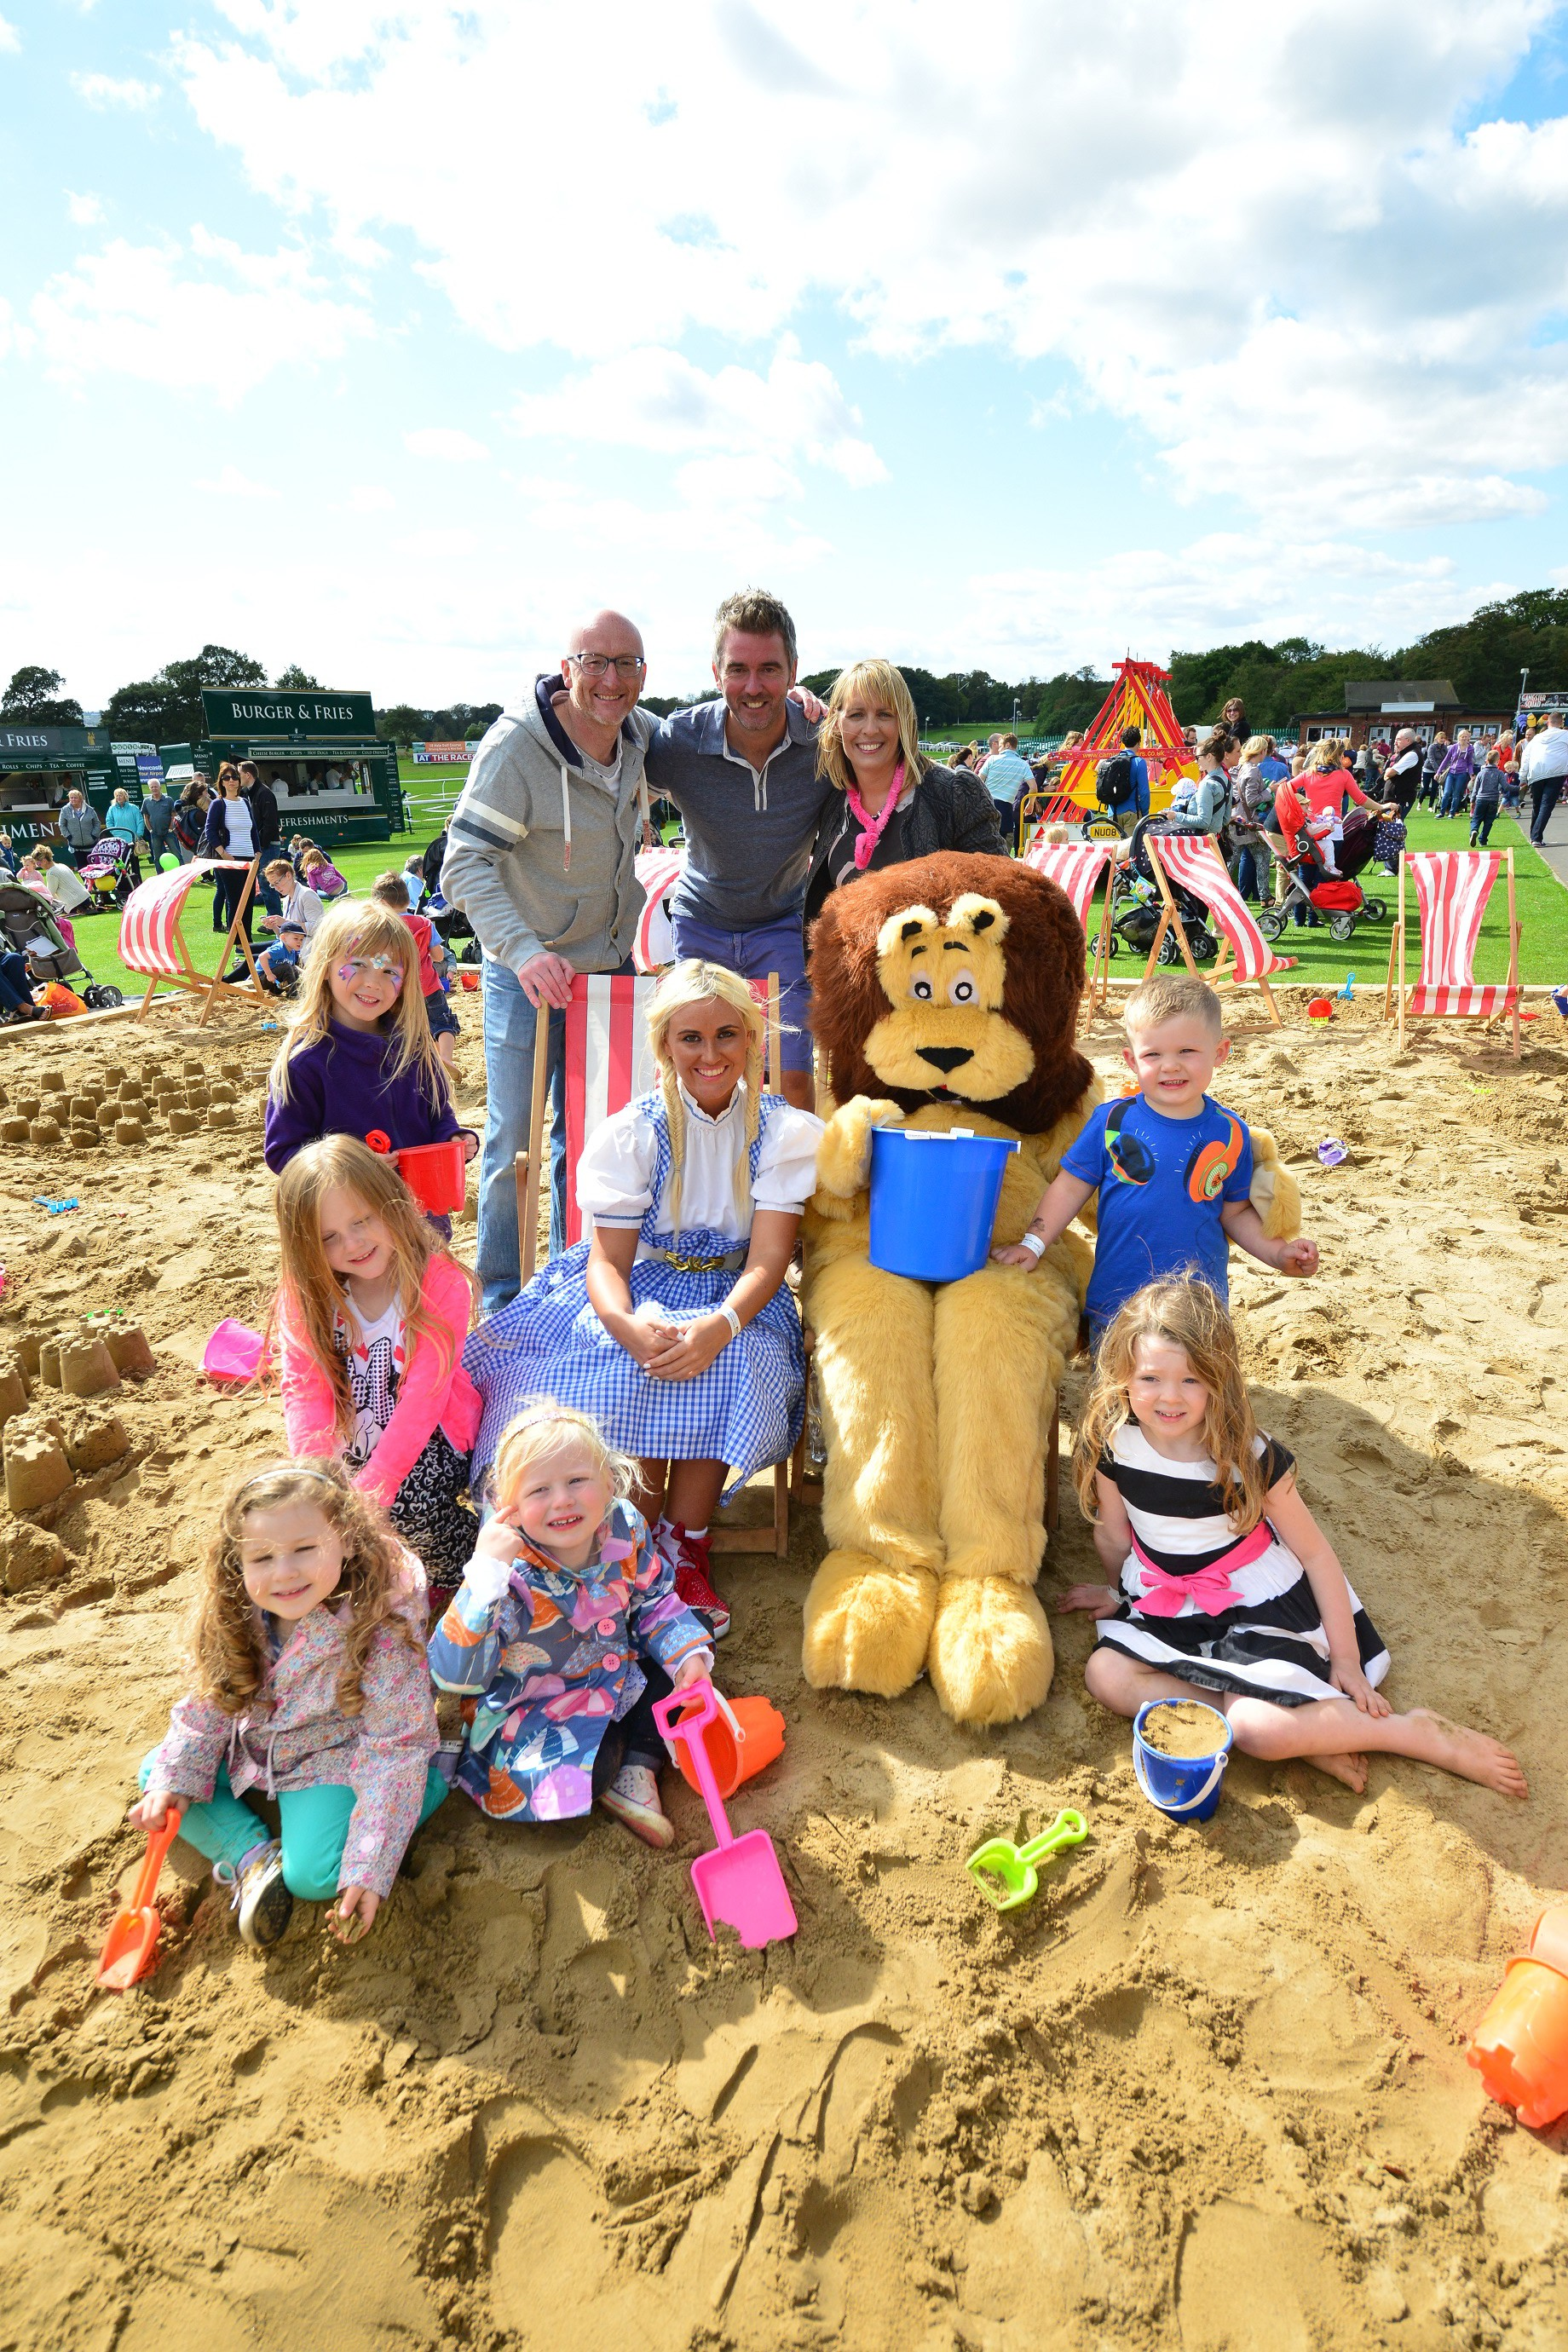 Kids 1st and Helen McArdle Care Fun Day raises over £1500 for The Children's Foundation